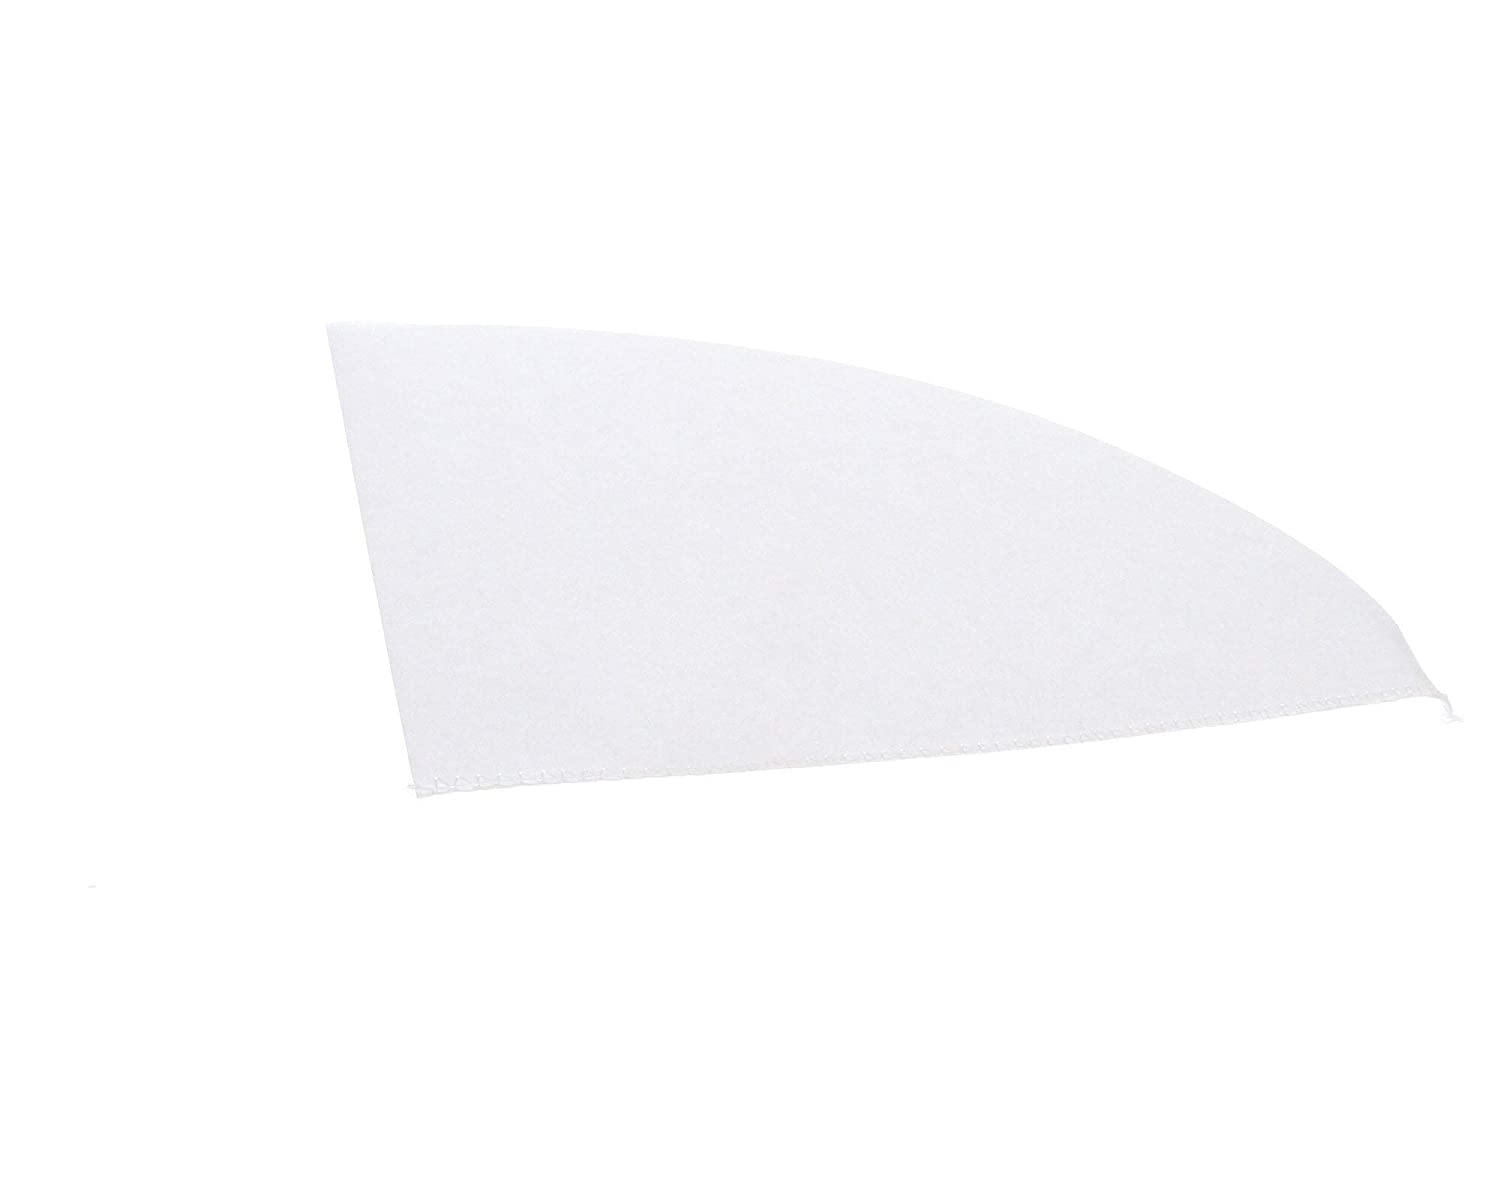 Frymaster 8030042 Filter Cone 10 (Sales Only)